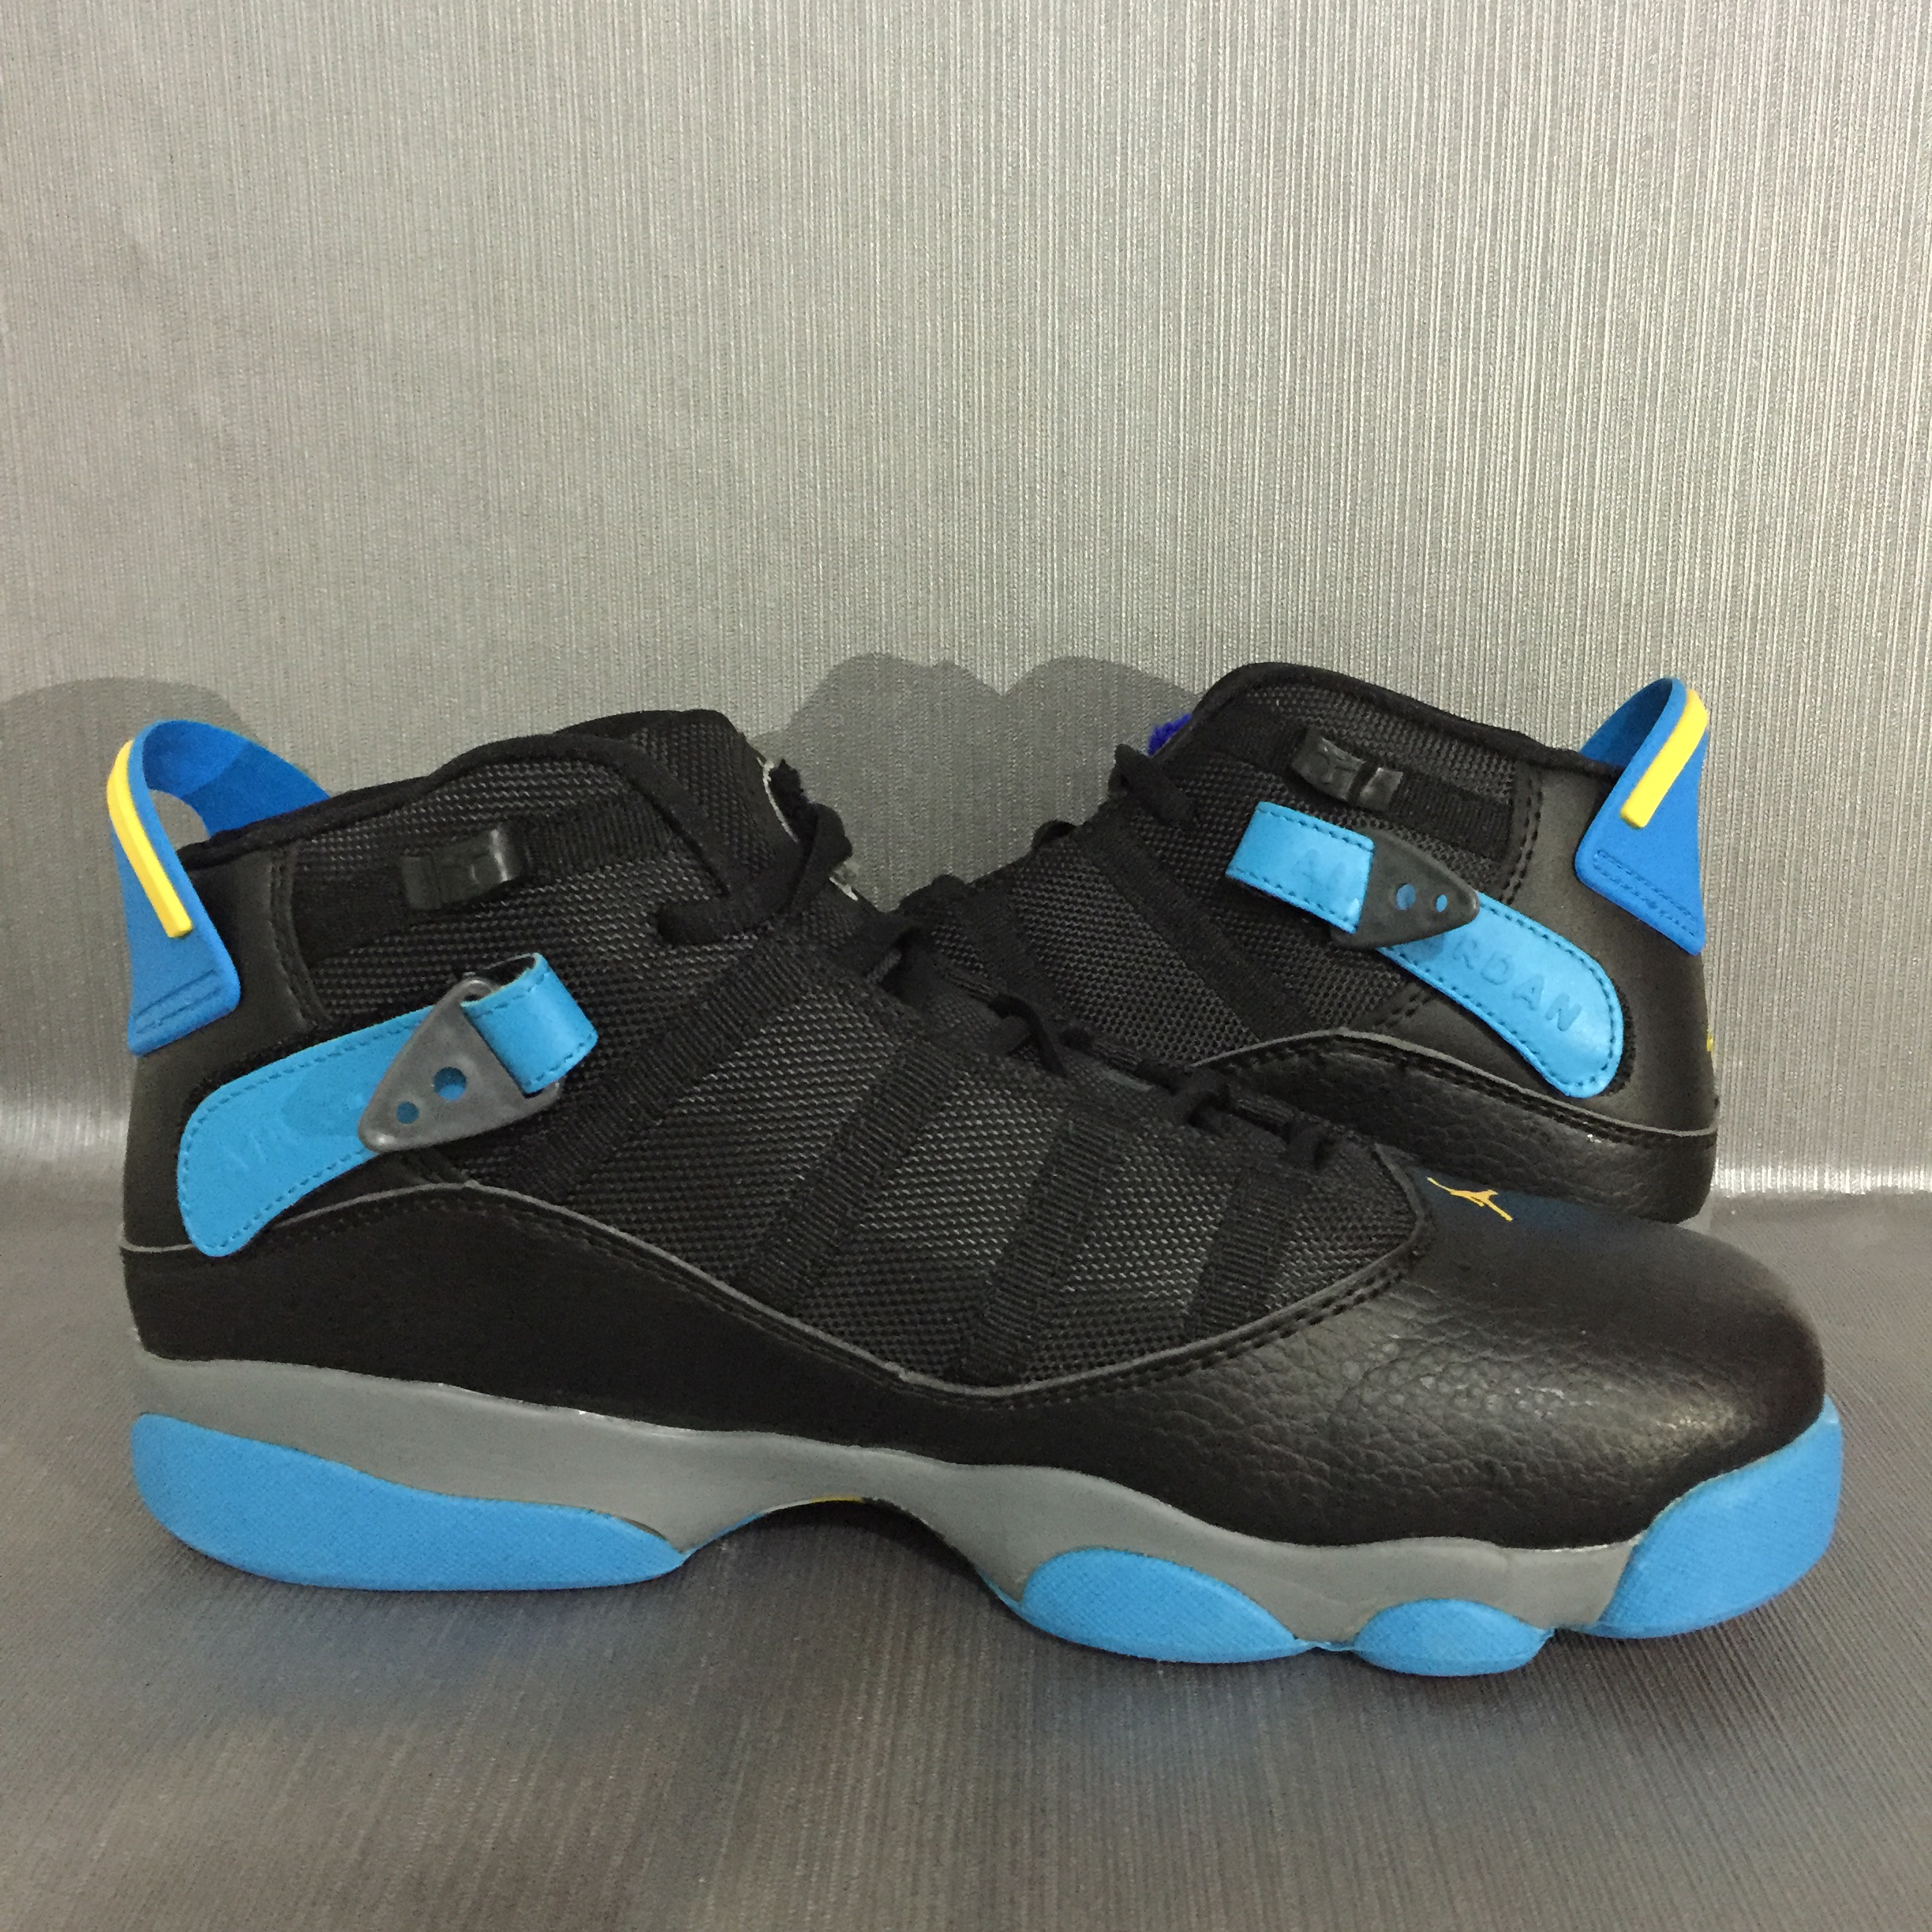 New Jordan 6 Rings Black Blue Yellow Shoes